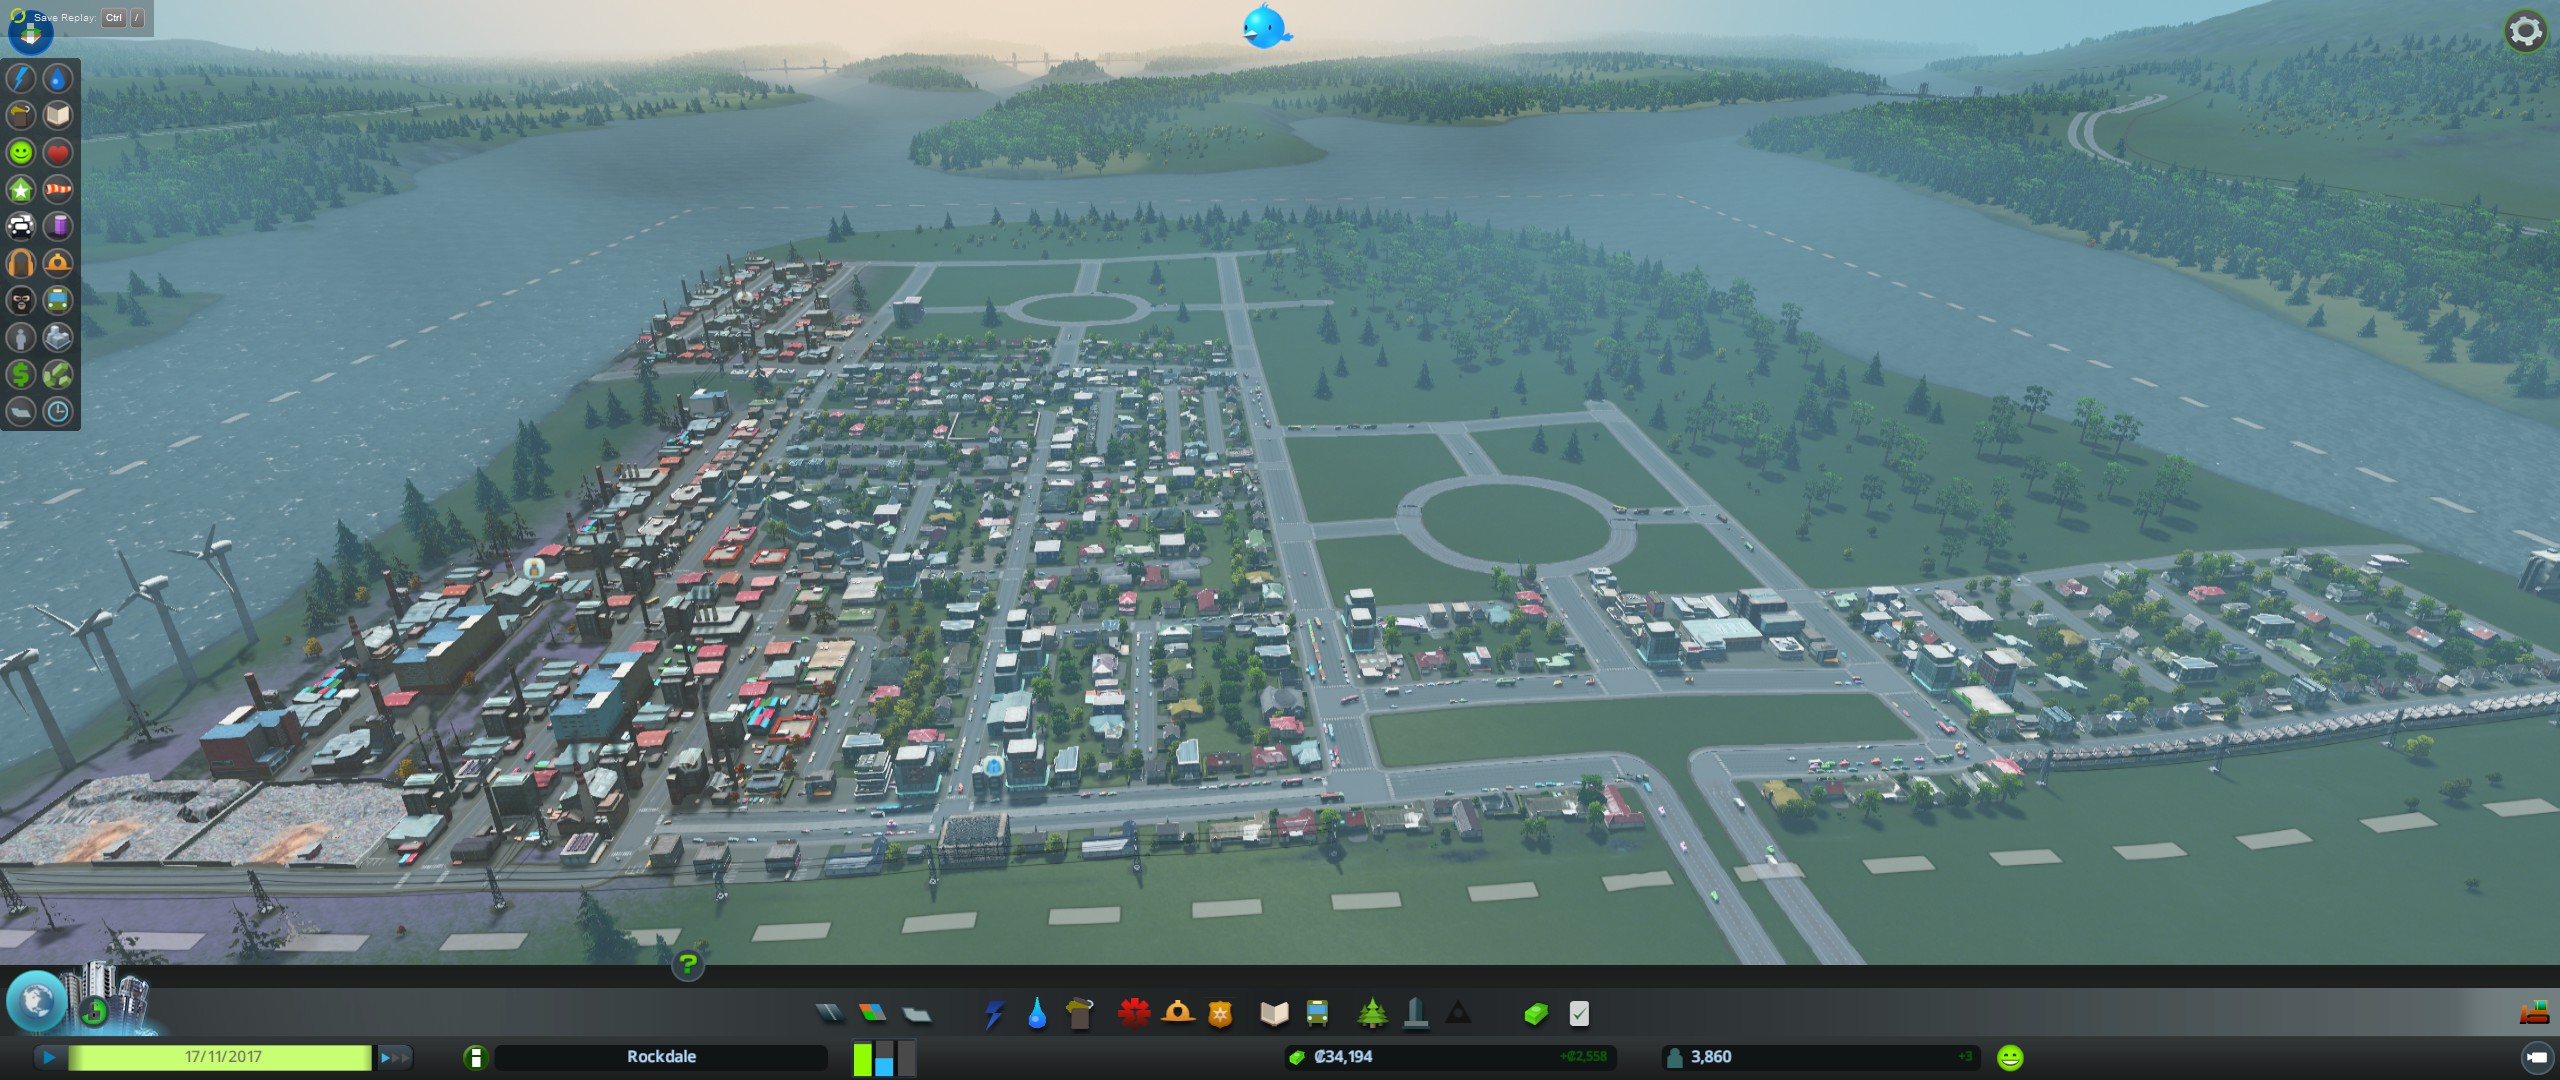 Cities skylines review pc the average gamer for Us city skylines photos